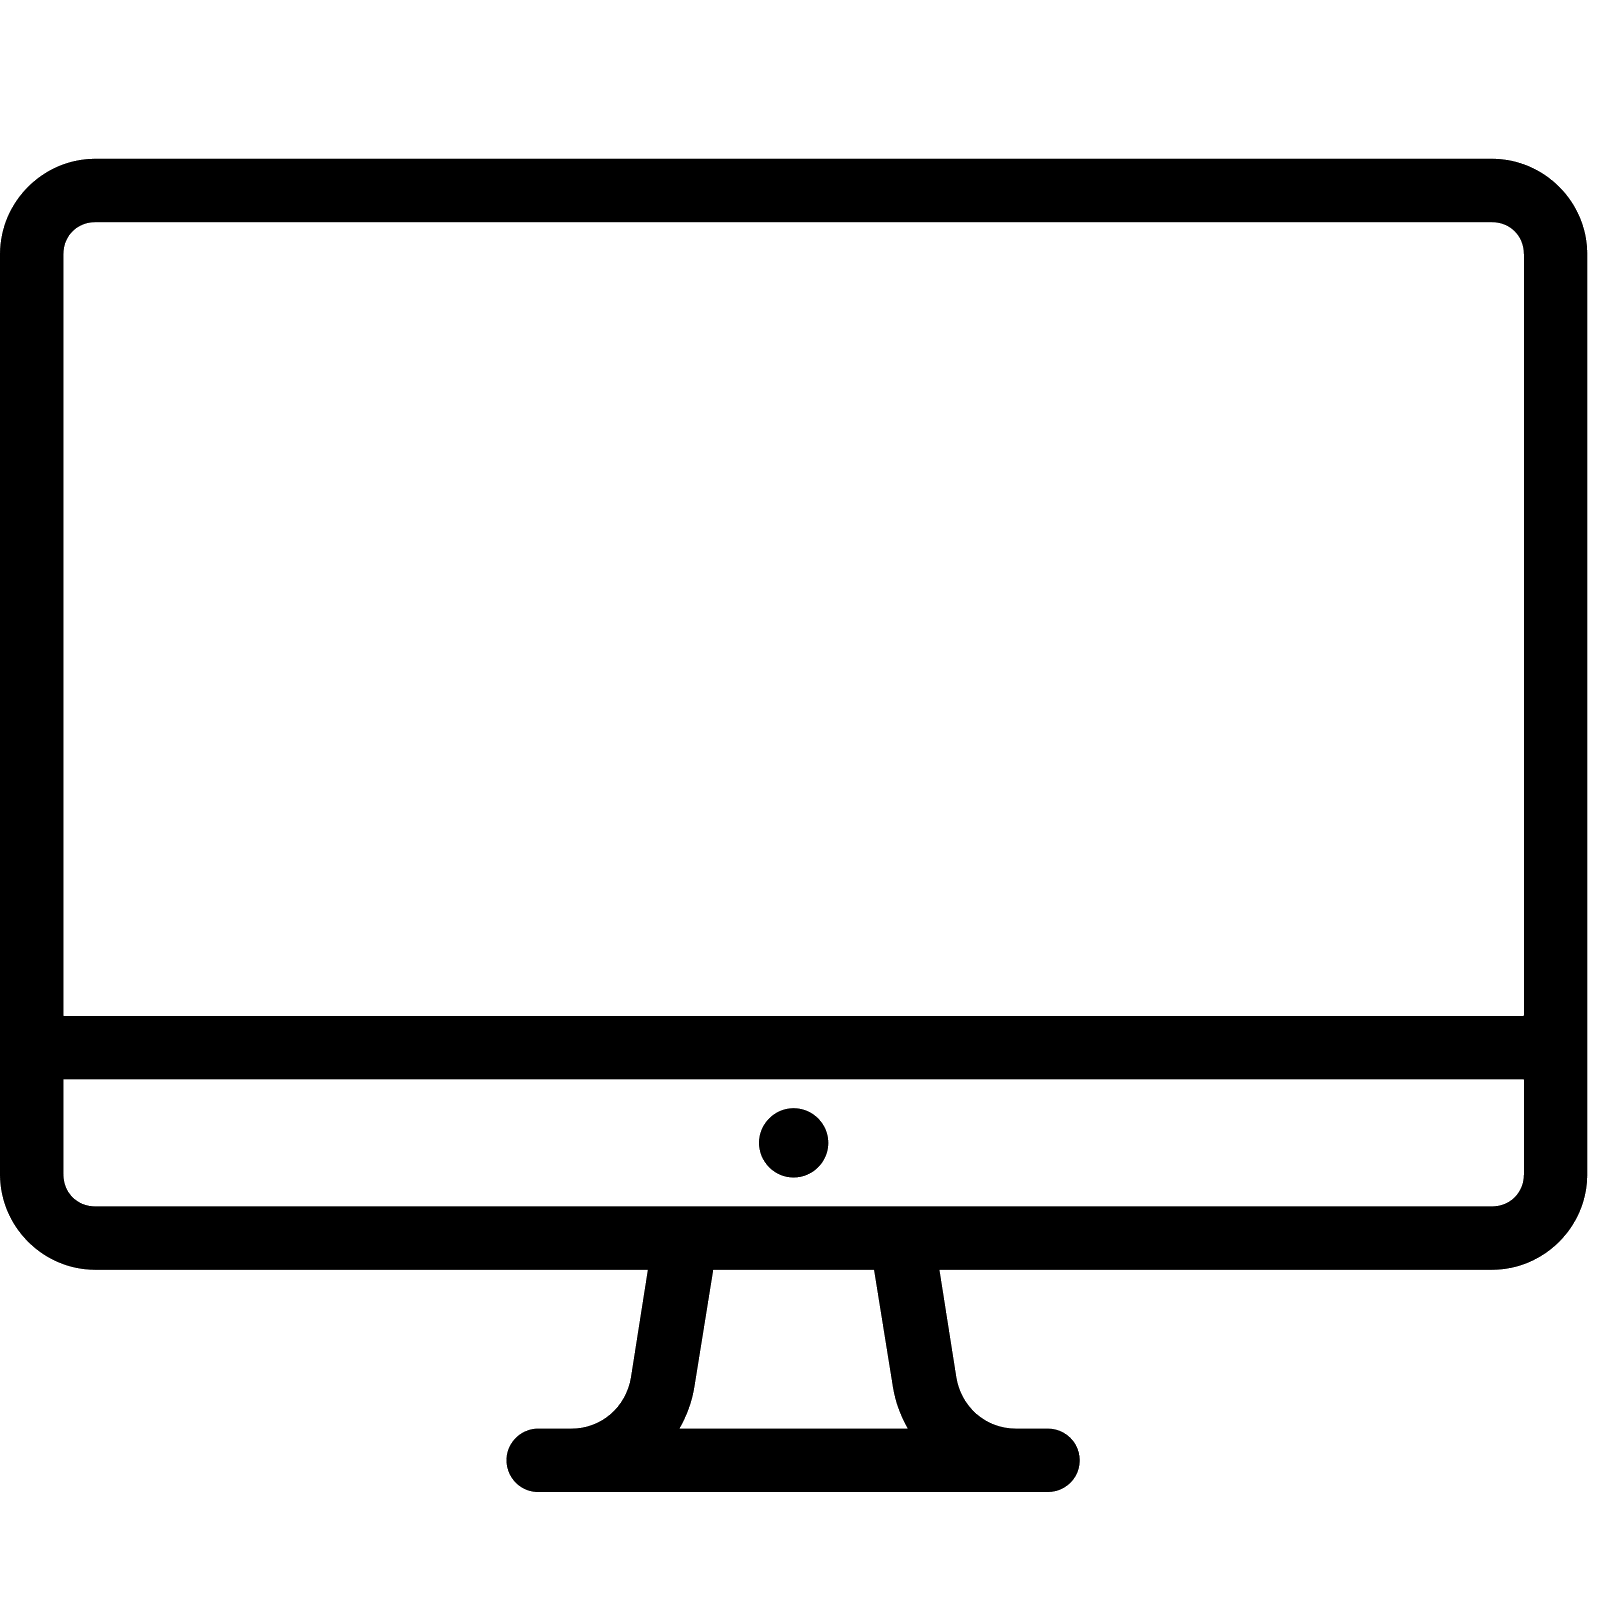 Computer Screen Icon Png #239841.